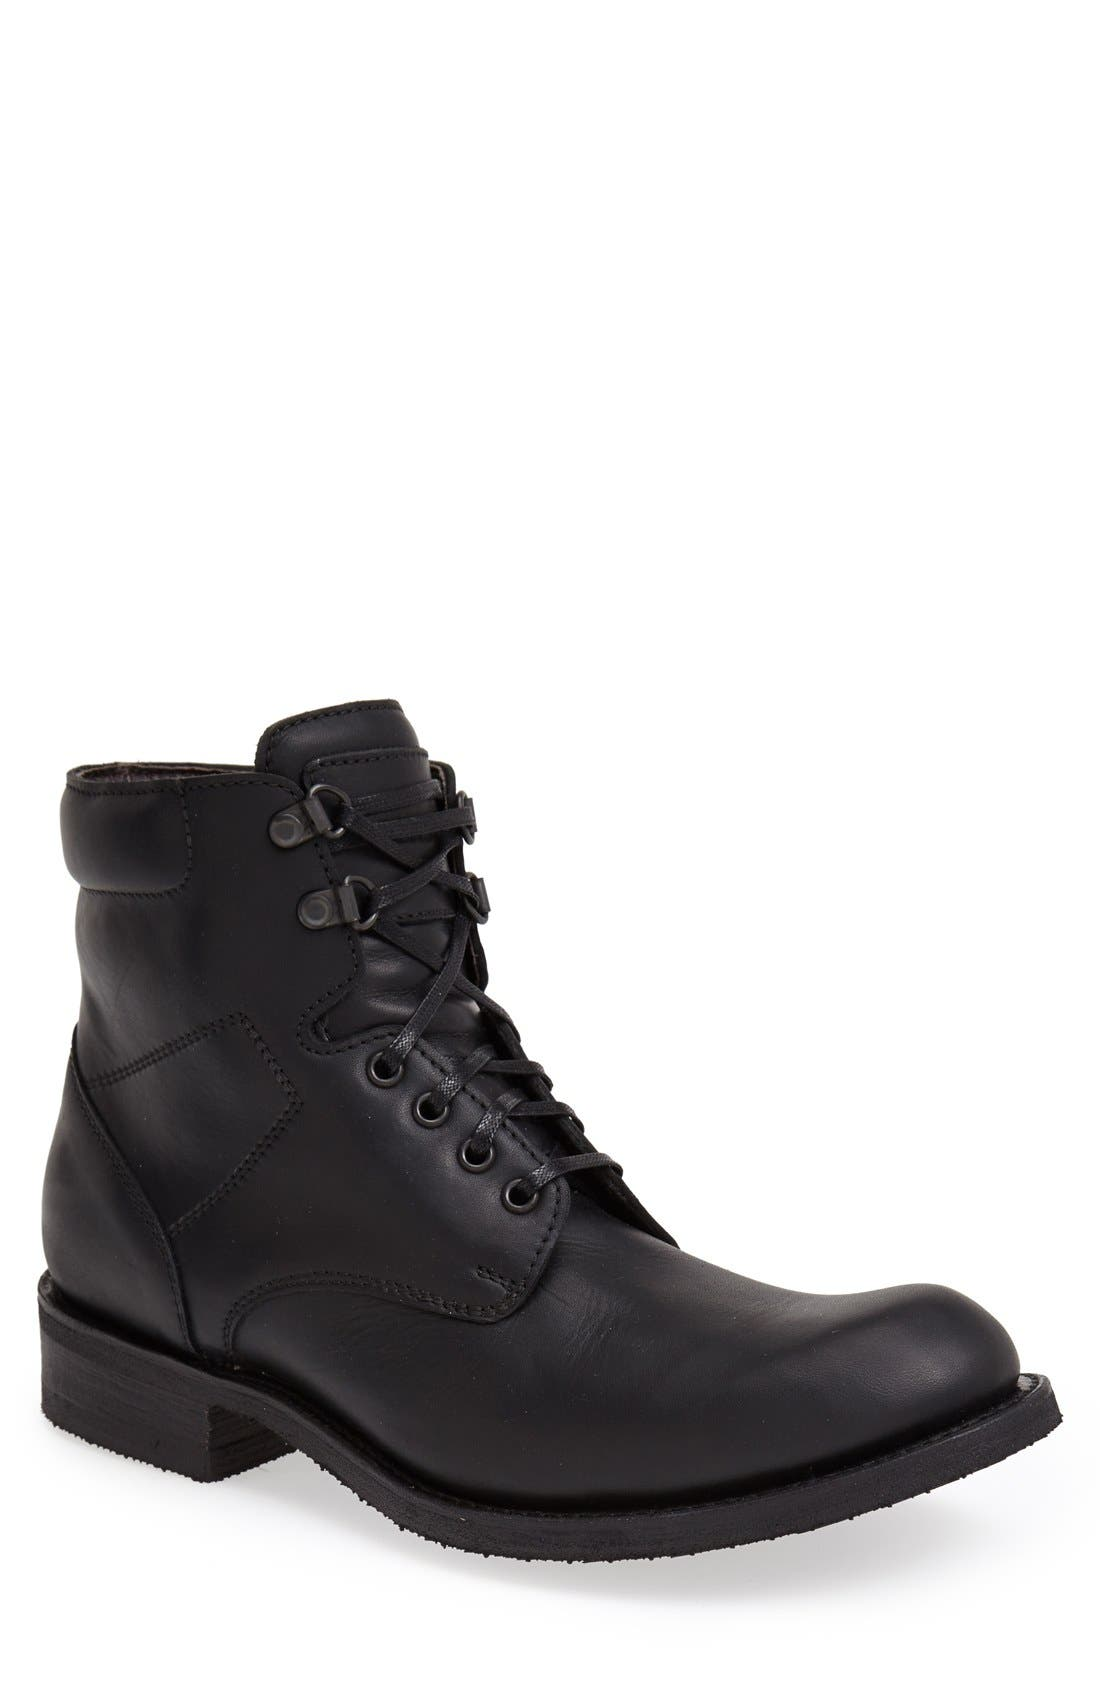 'Traveler' Round Toe Boot,                         Main,                         color, BLACK MONCAY